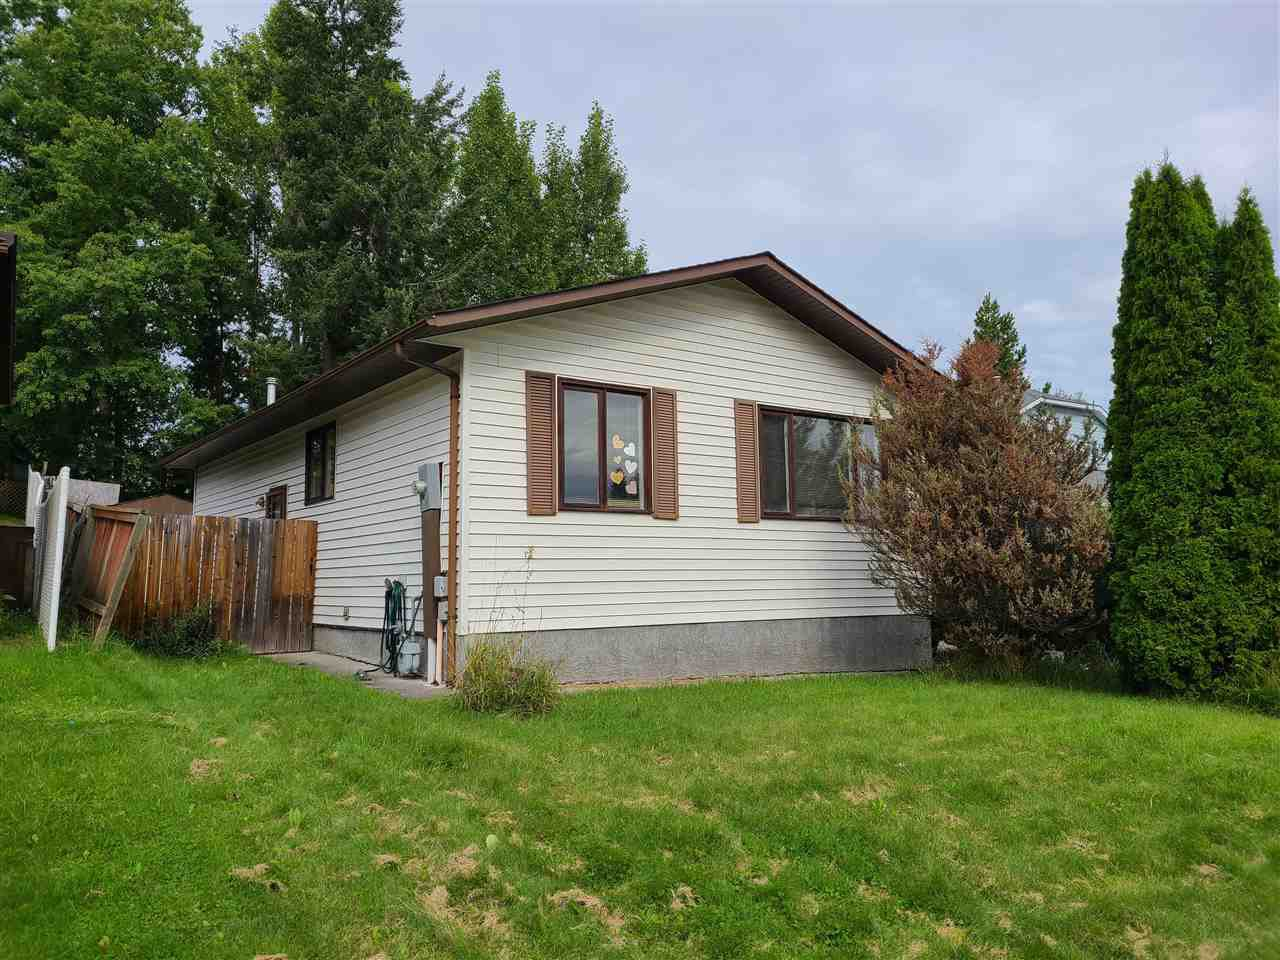 Main Photo: 7611 ST PATRICK Avenue in Prince George: St. Lawrence Heights House for sale (PG City South (Zone 74))  : MLS®# R2494132